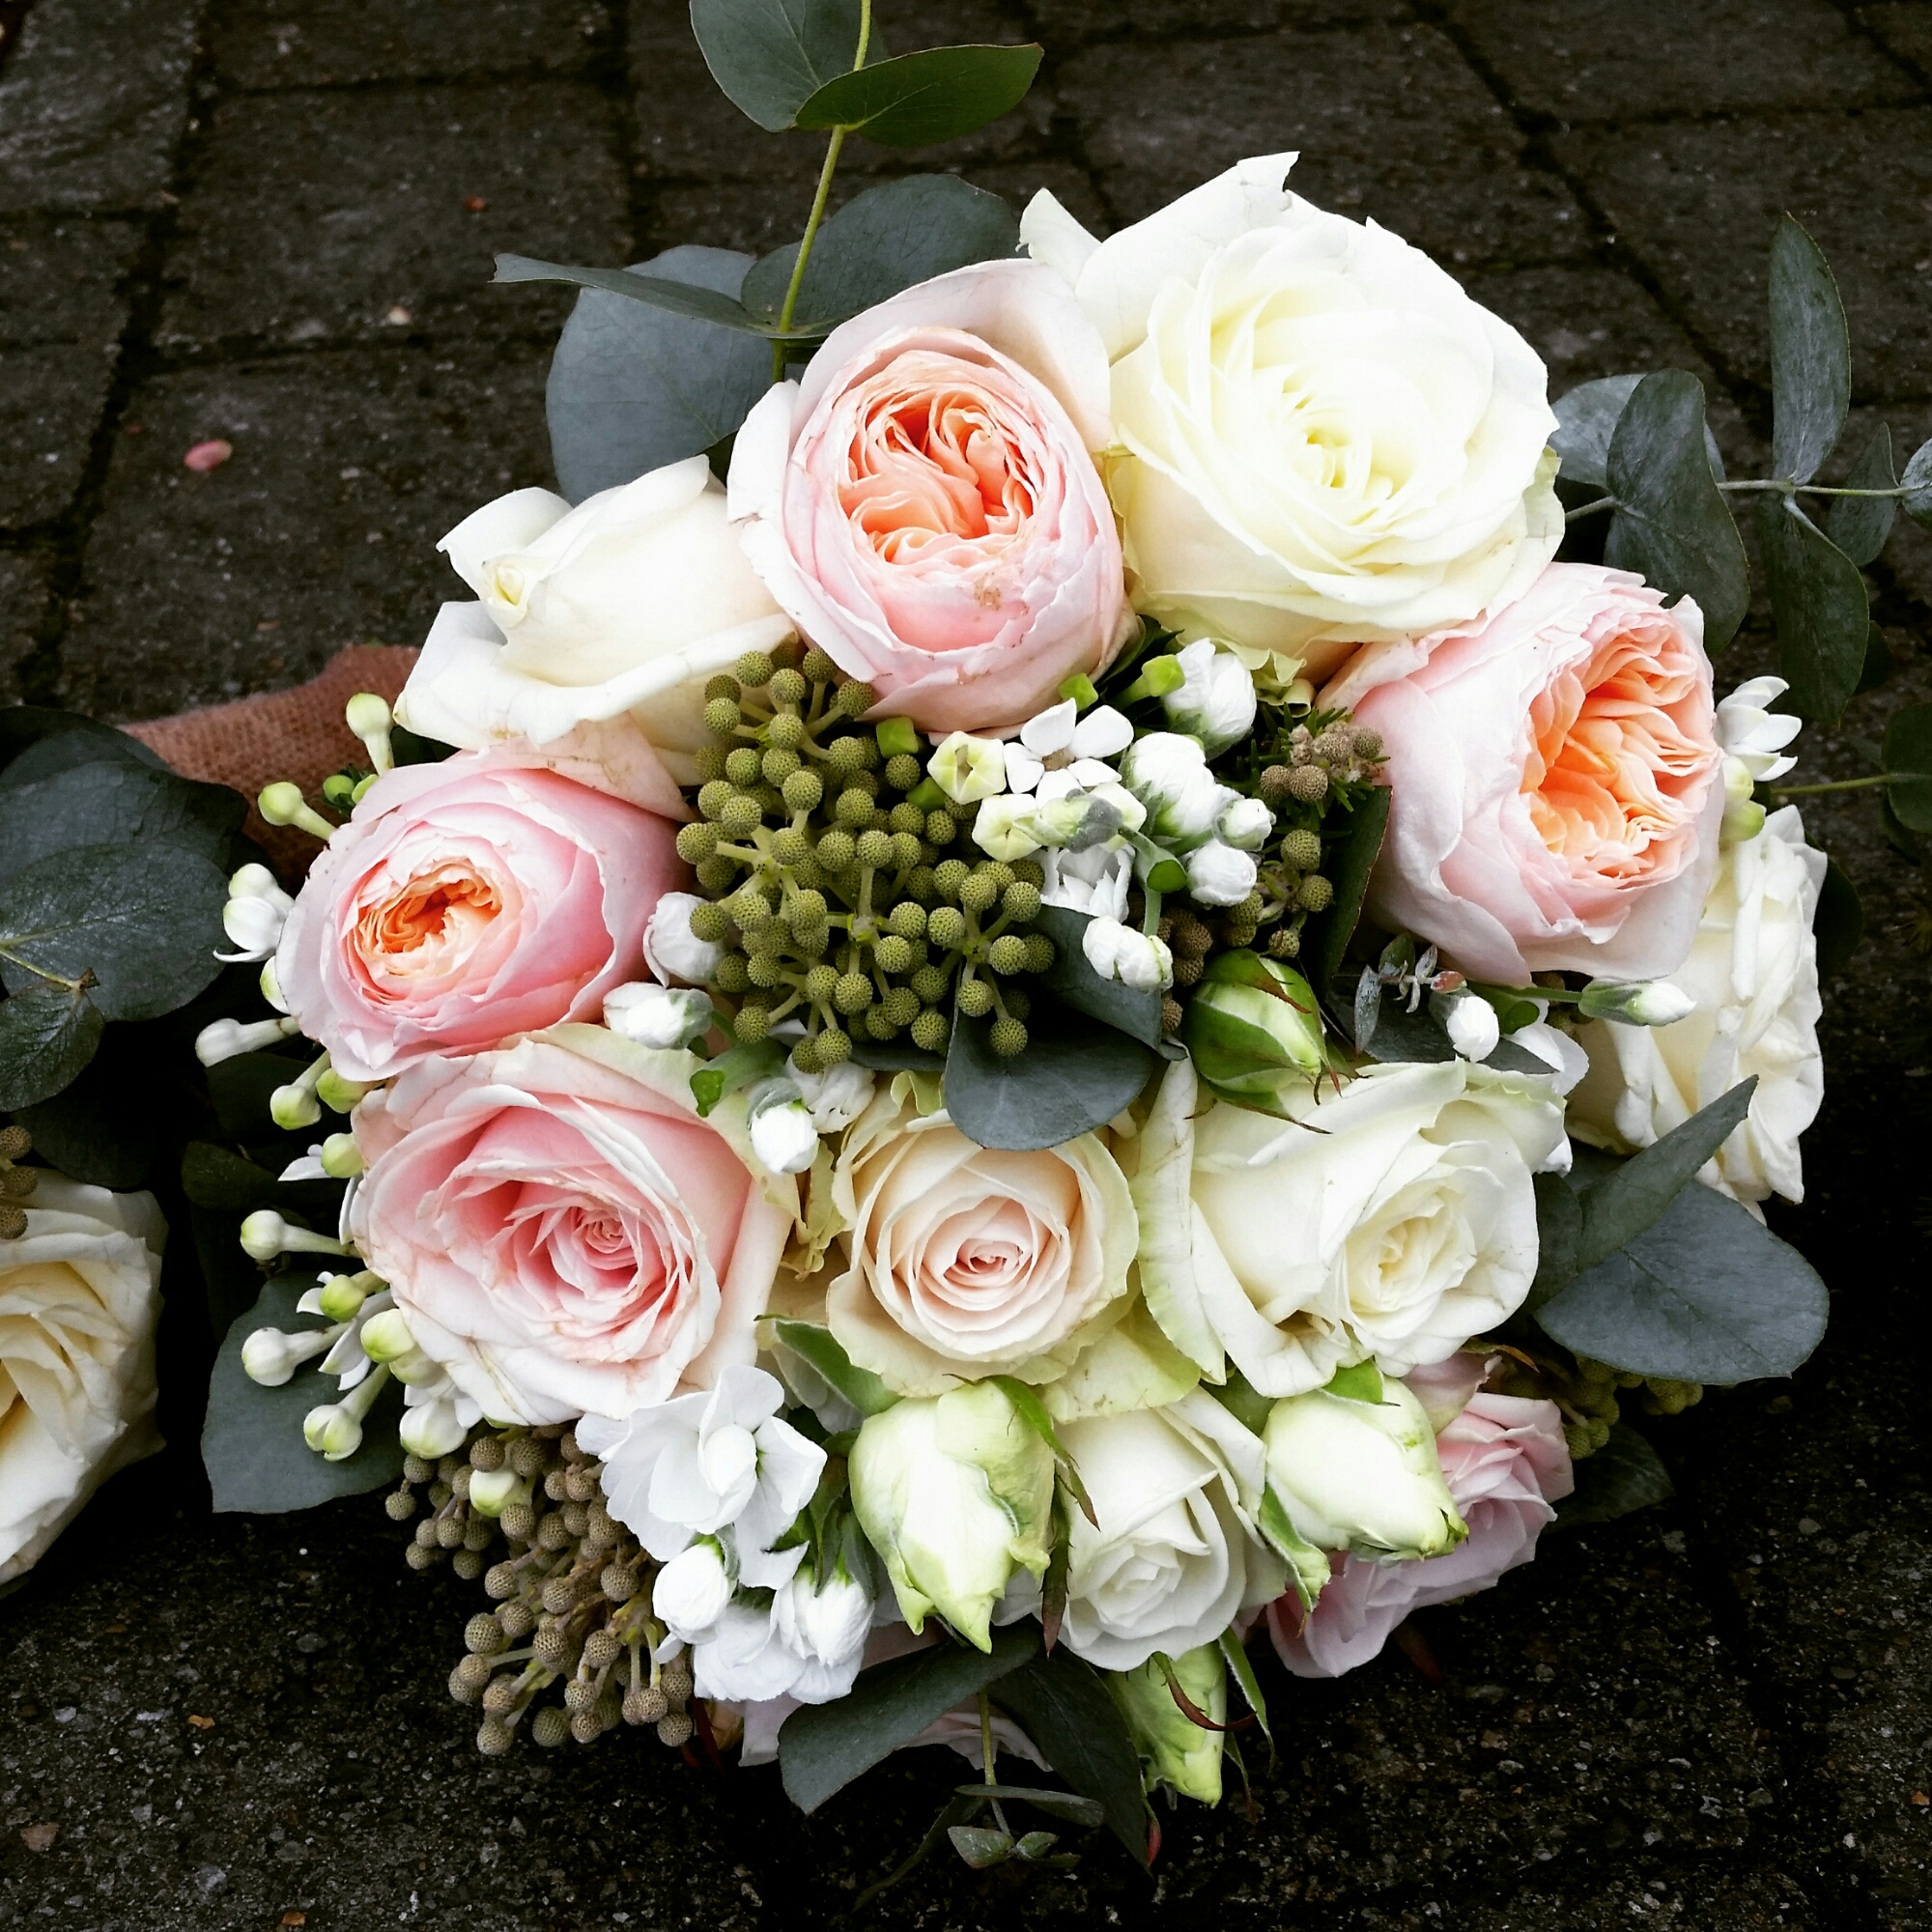 The True Cost Wedding Flowers from a Florist's Point of